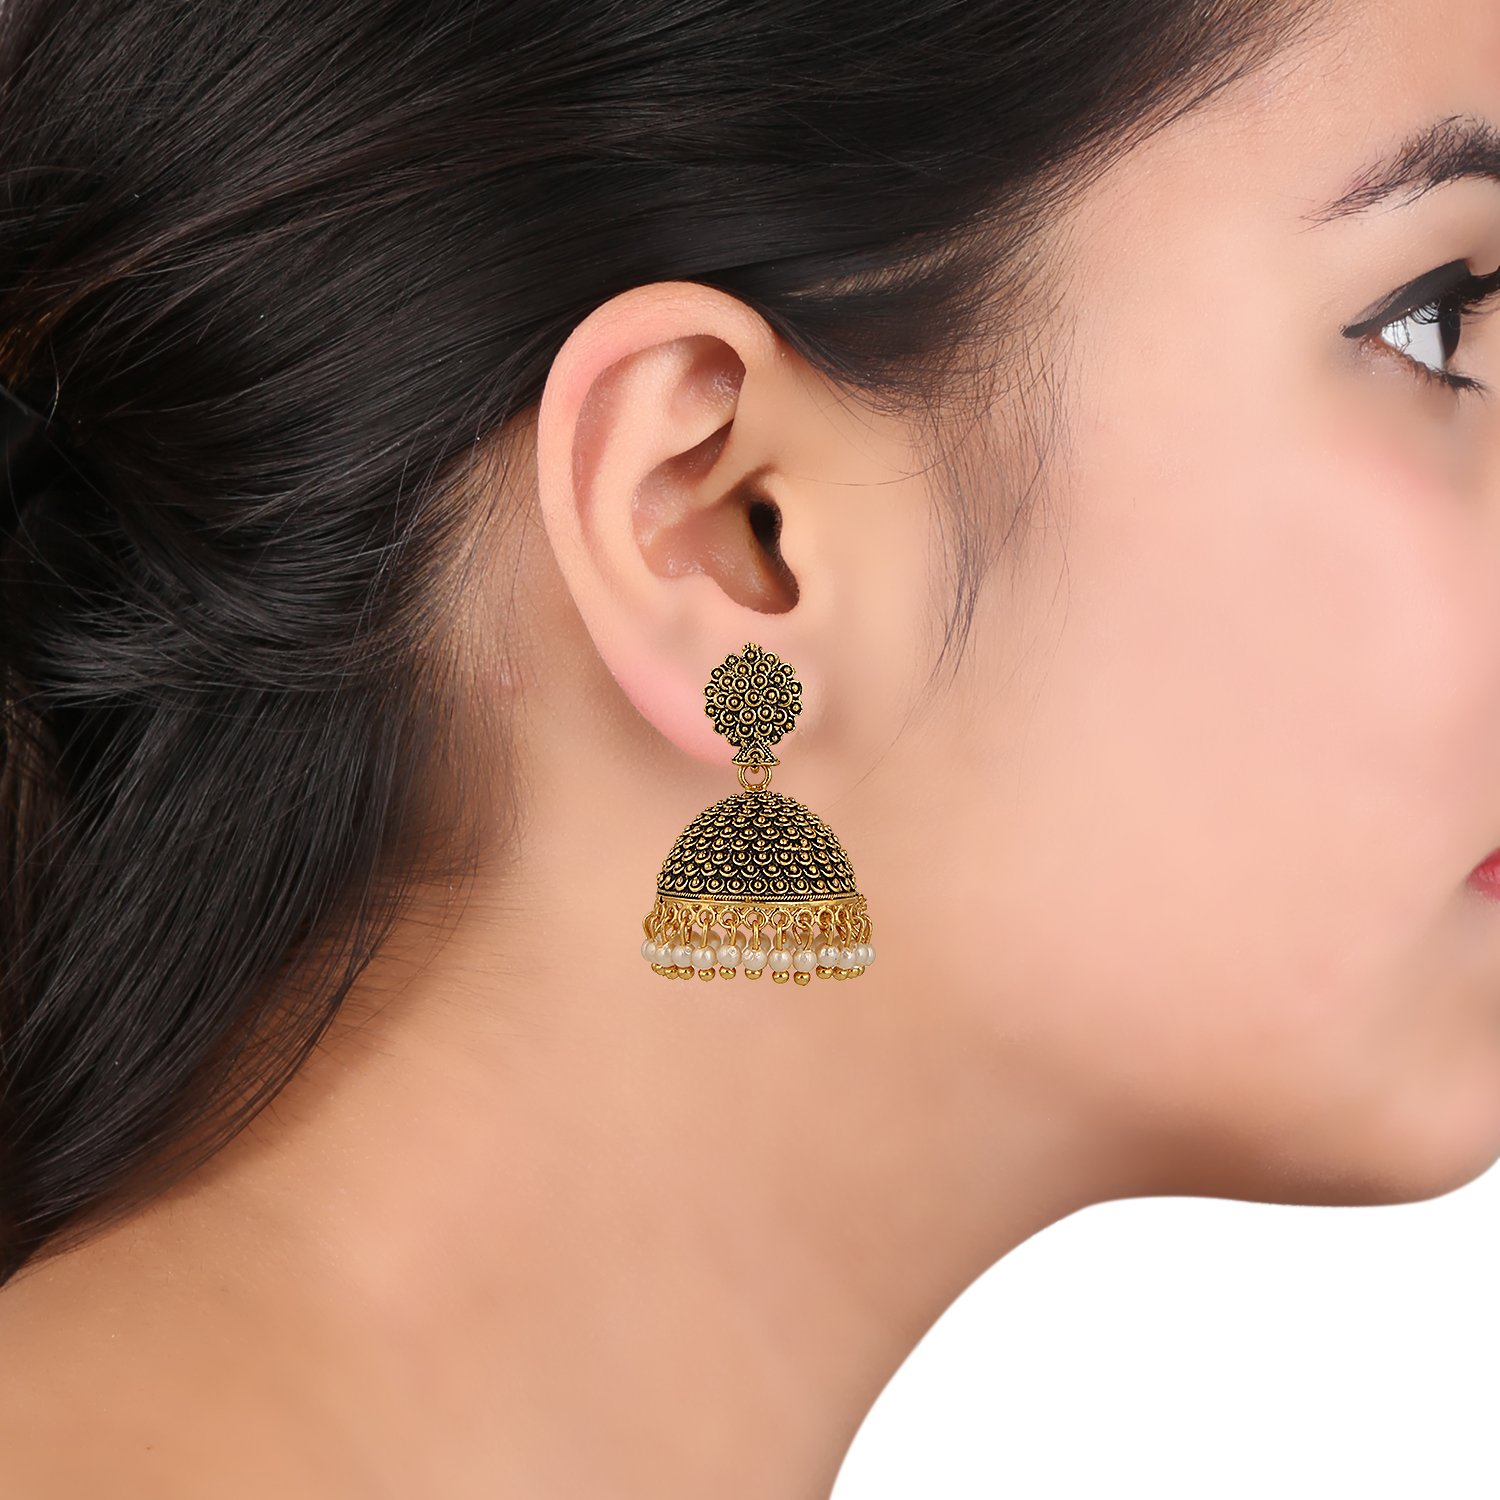 425e7d6df Efulgenz Indian Vintage Bollywood Gypsy Oxidized Gold Plated Traditional  Jhumka Jhumki Earrings for Women and Girls - MER76 < Drop & Dangle <  Clothing, ...